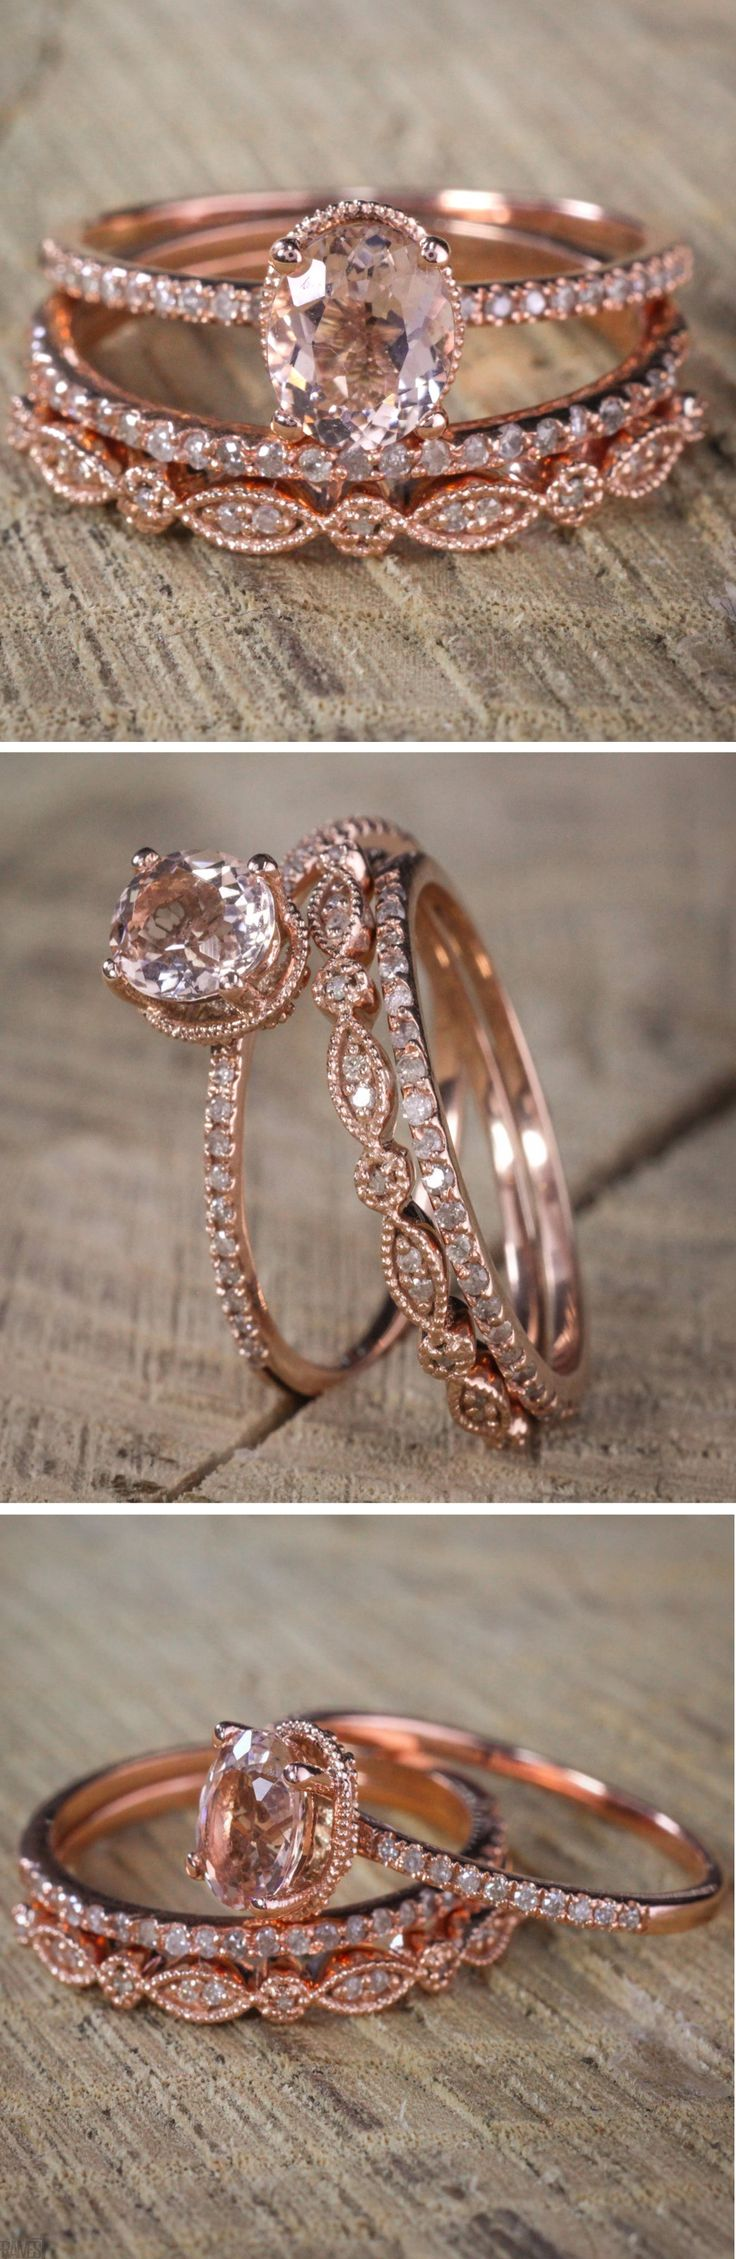 engagement best cut pinterest on unique images ring rings to of fit emerald wedding stock